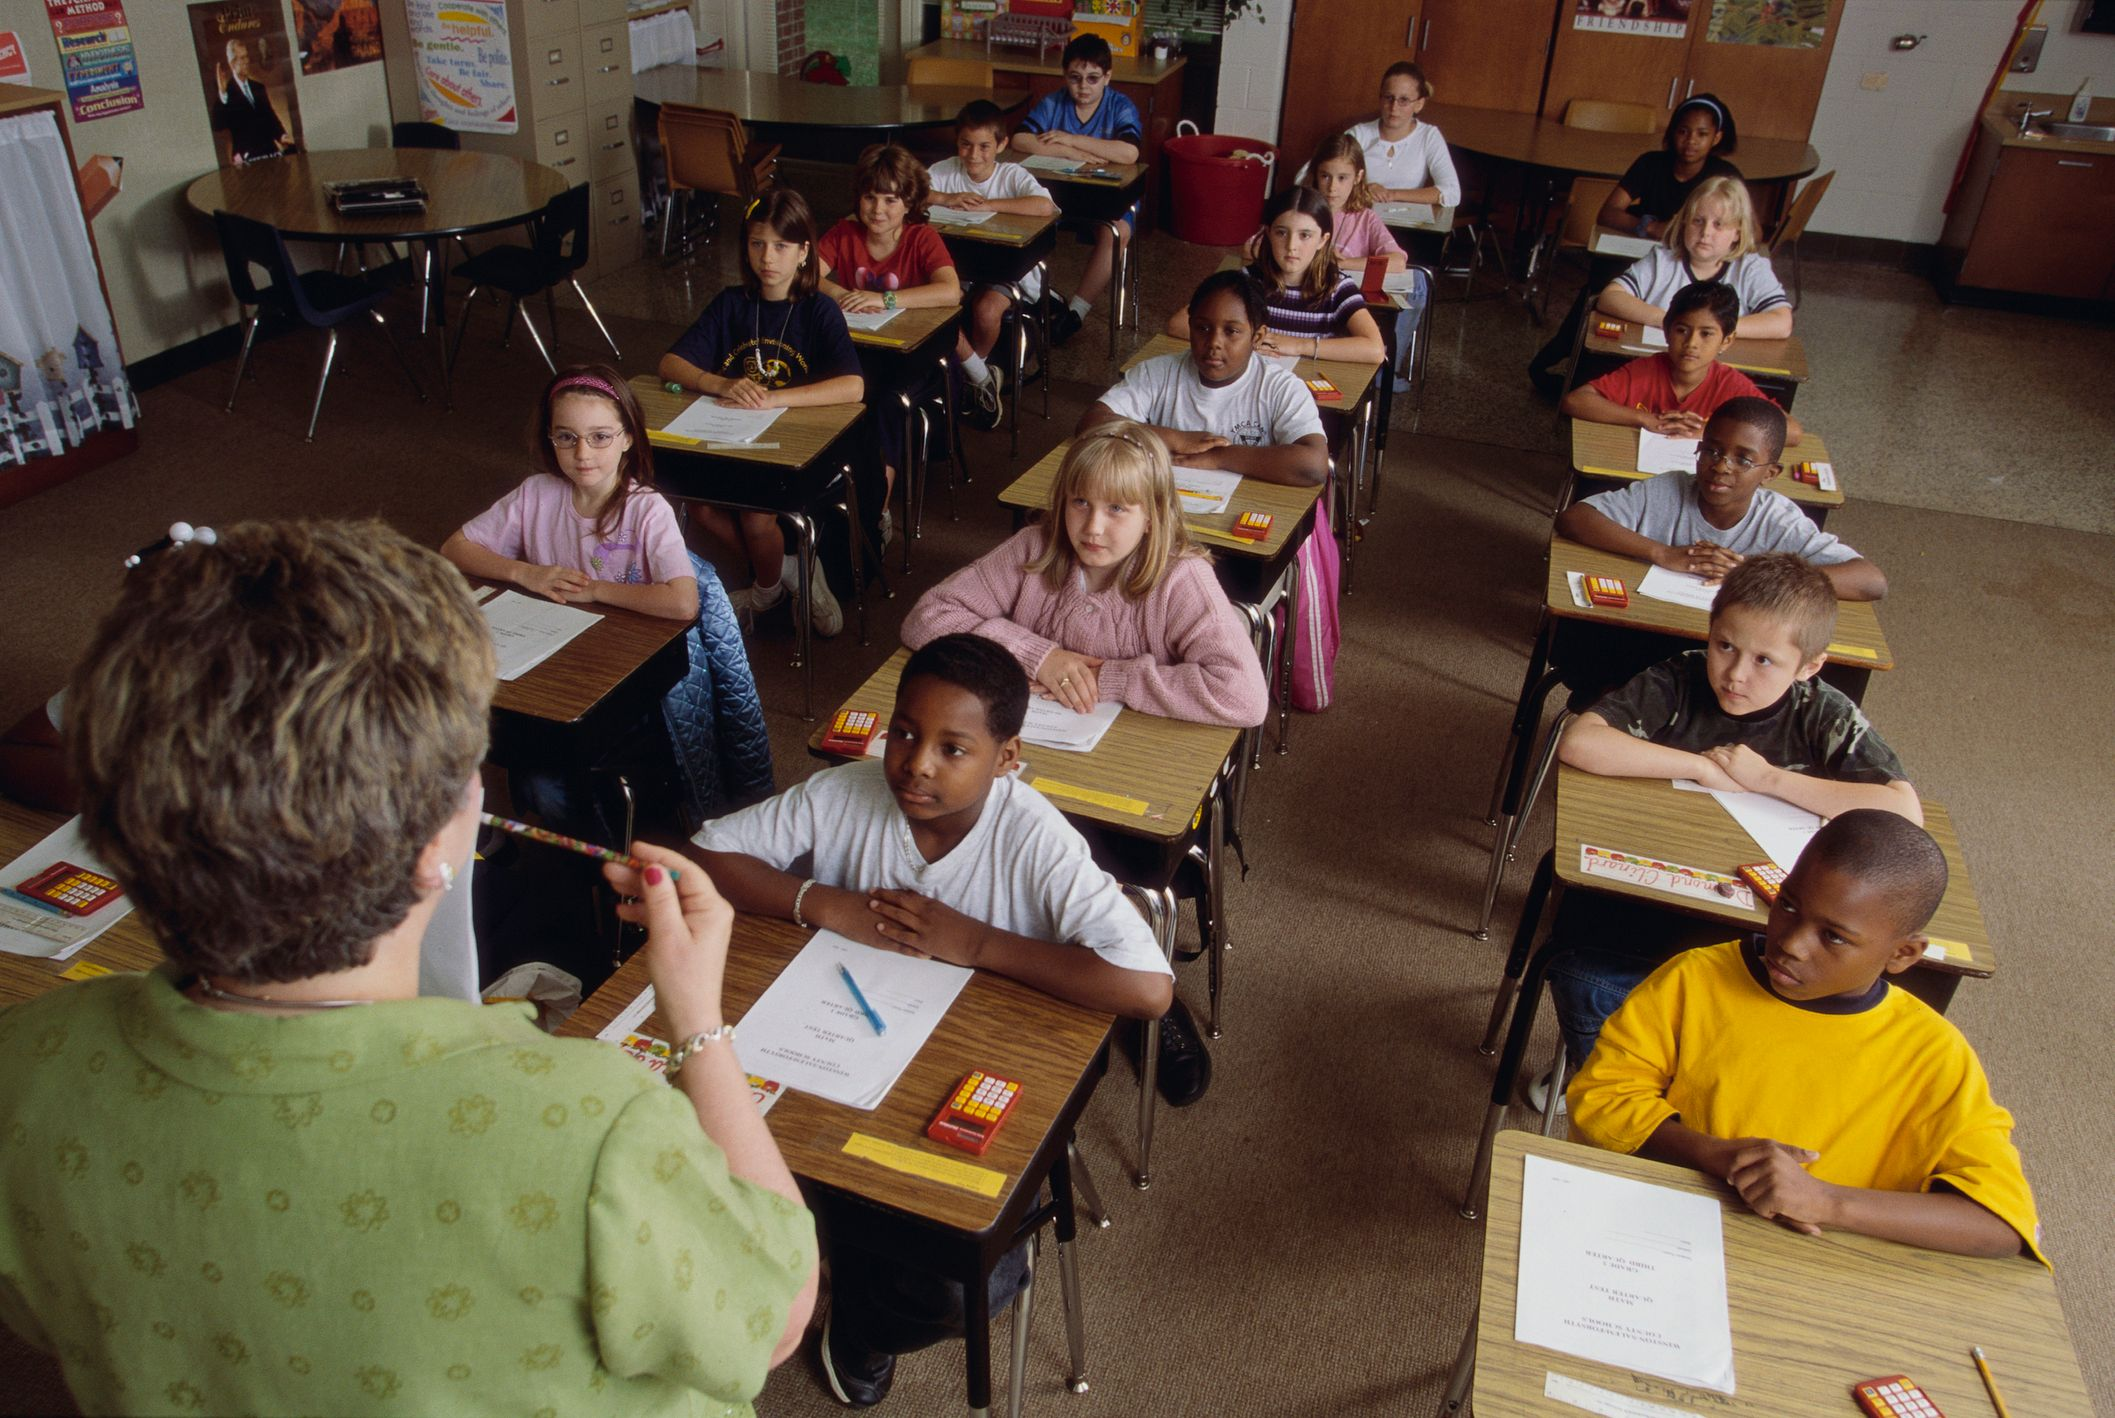 Teacher Going over Exam Instructions   Getty Images